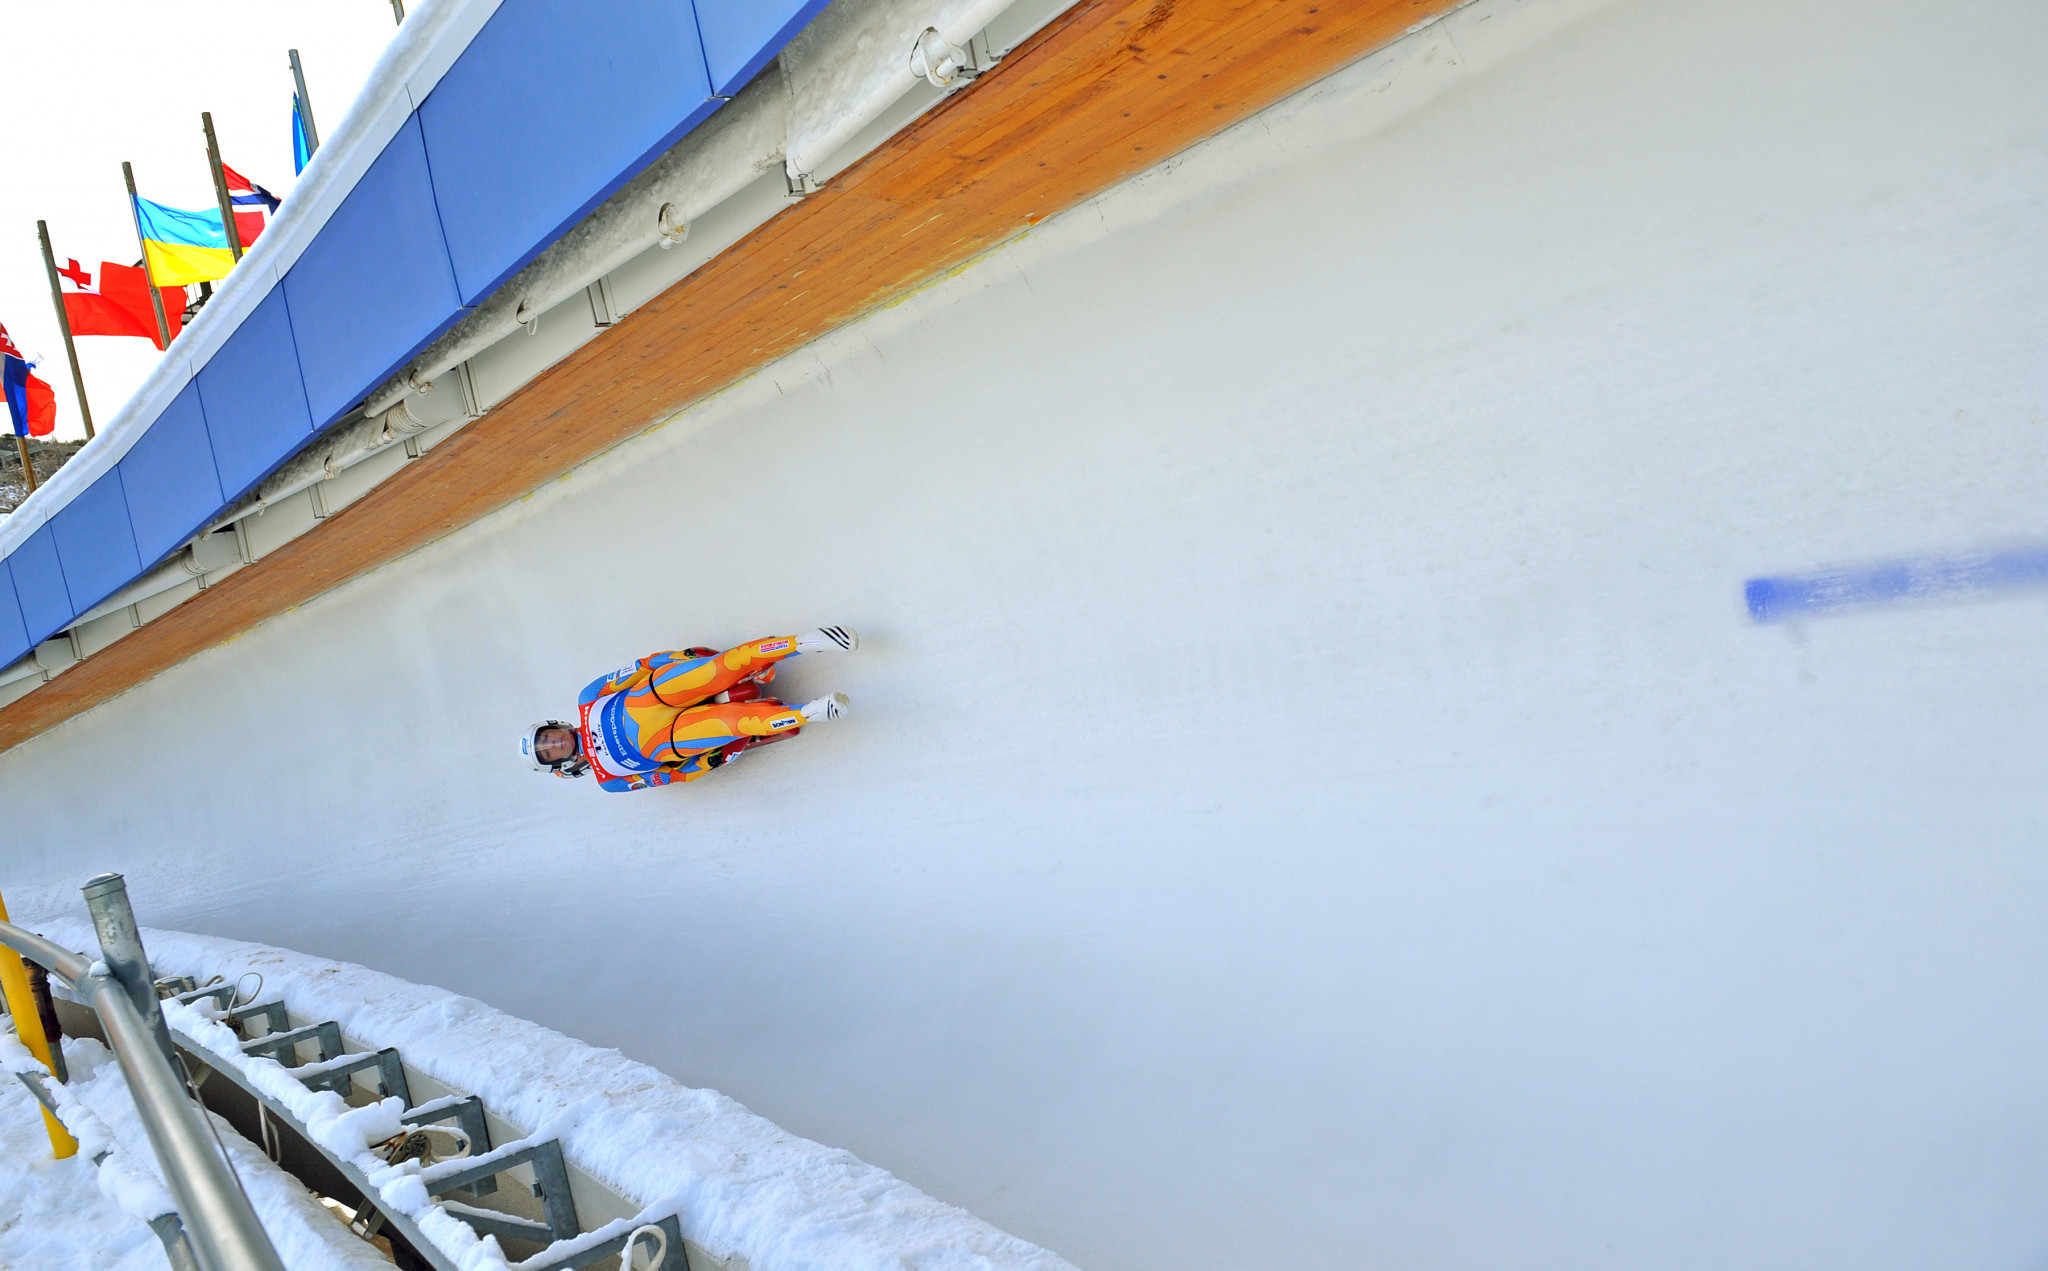 Luge World Cup leader Ludwig looks to get back on track in Sigulda